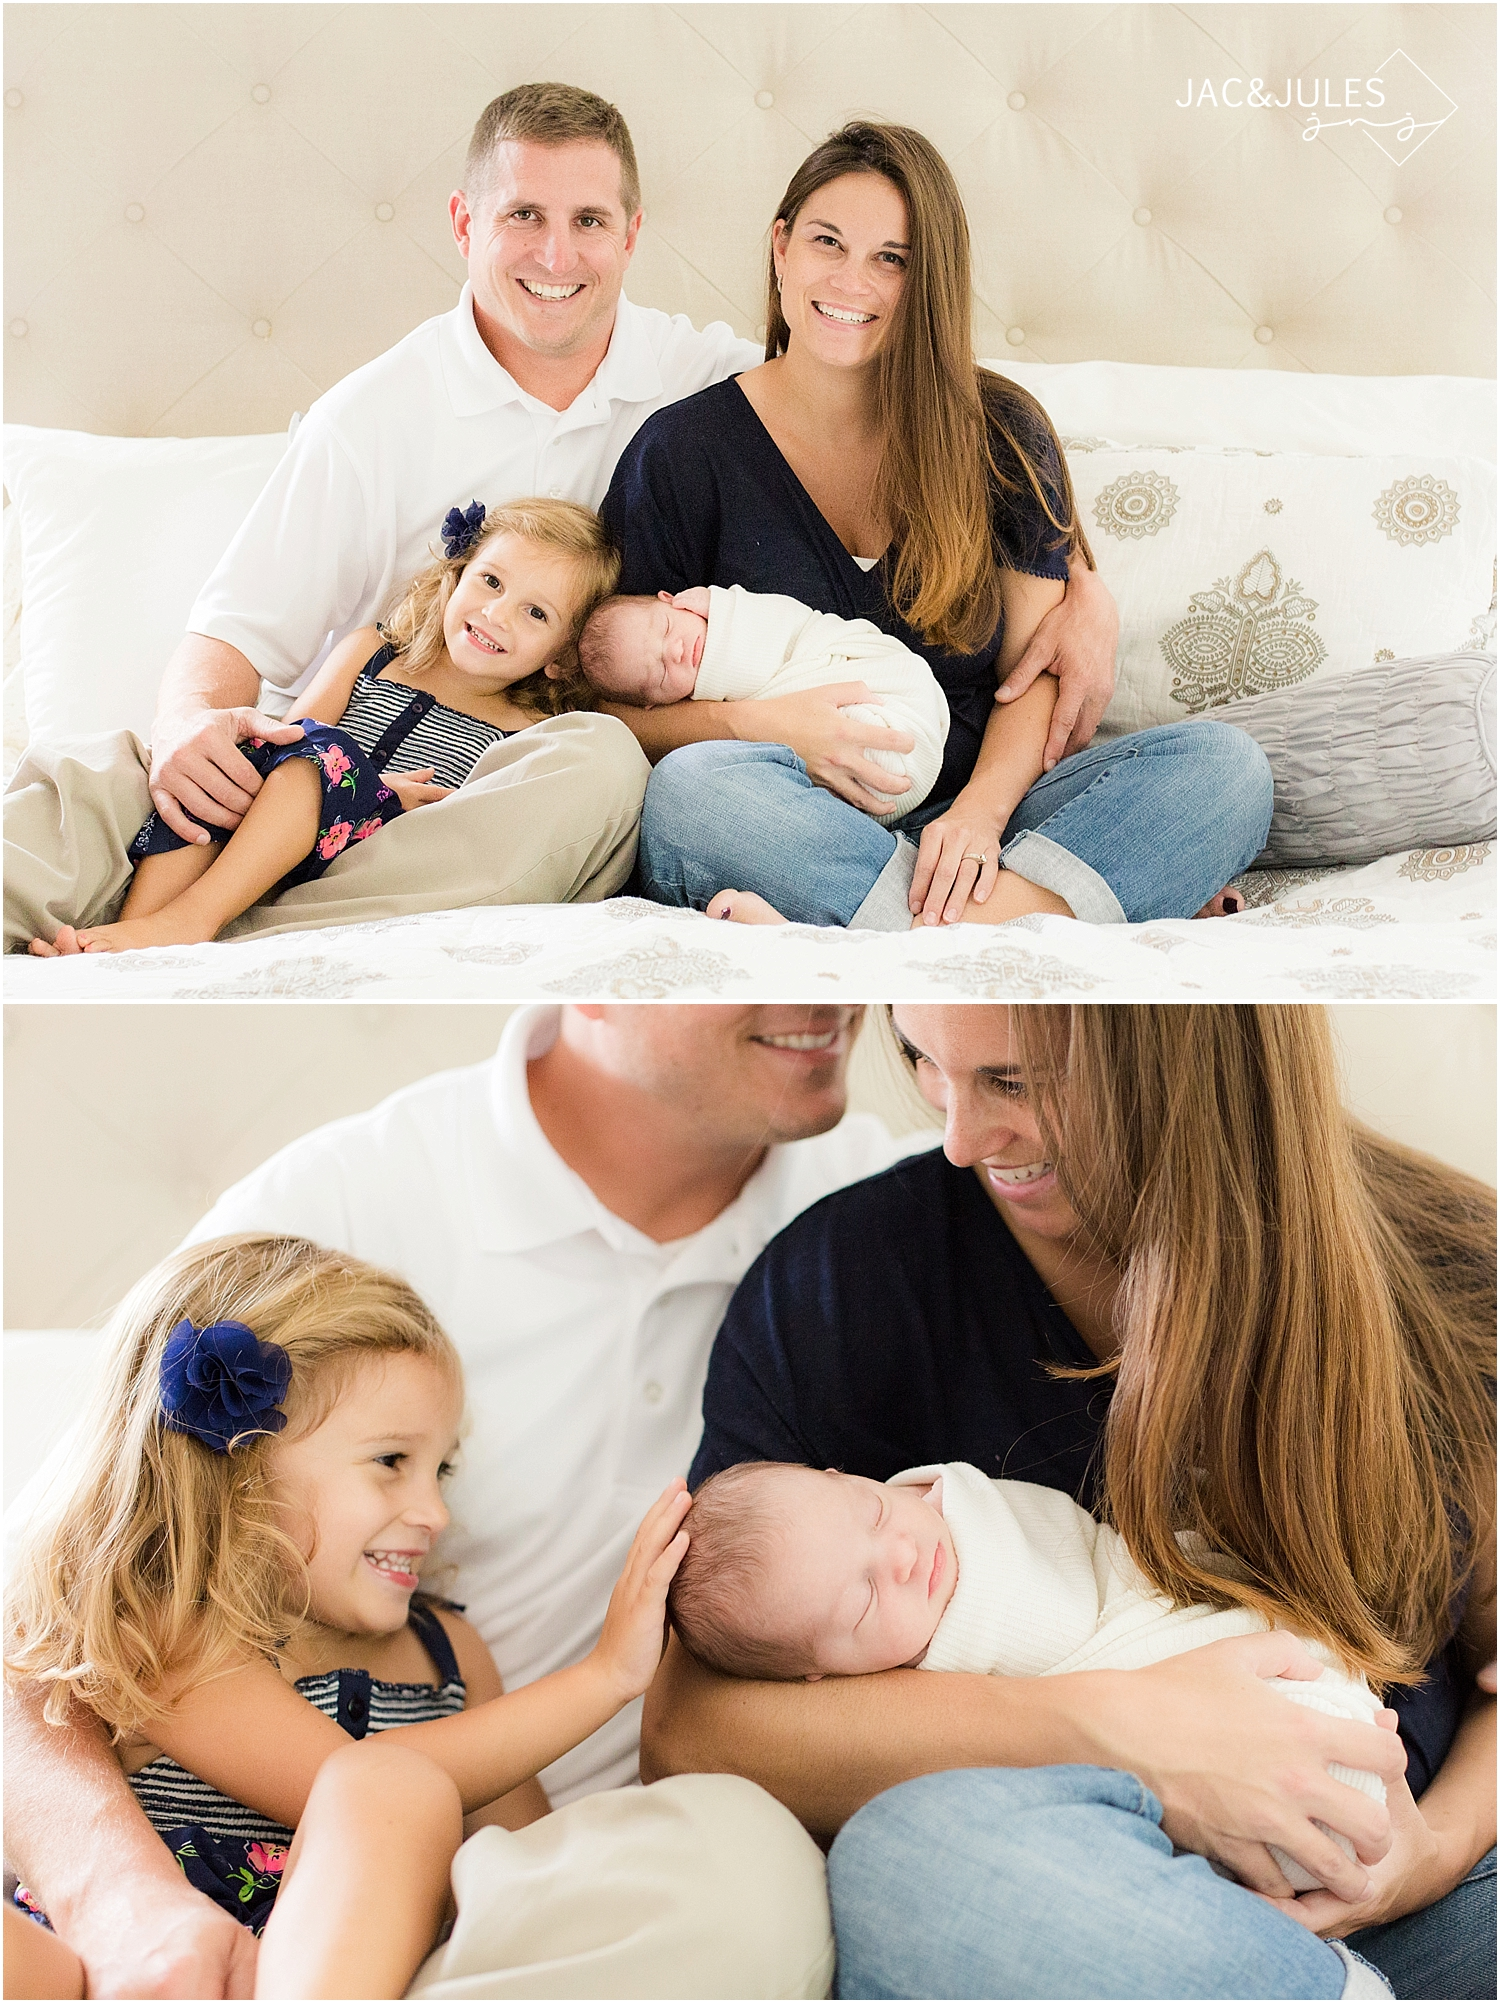 jacnjules photograph a newborn baby girl and her family in Toms River, NJ